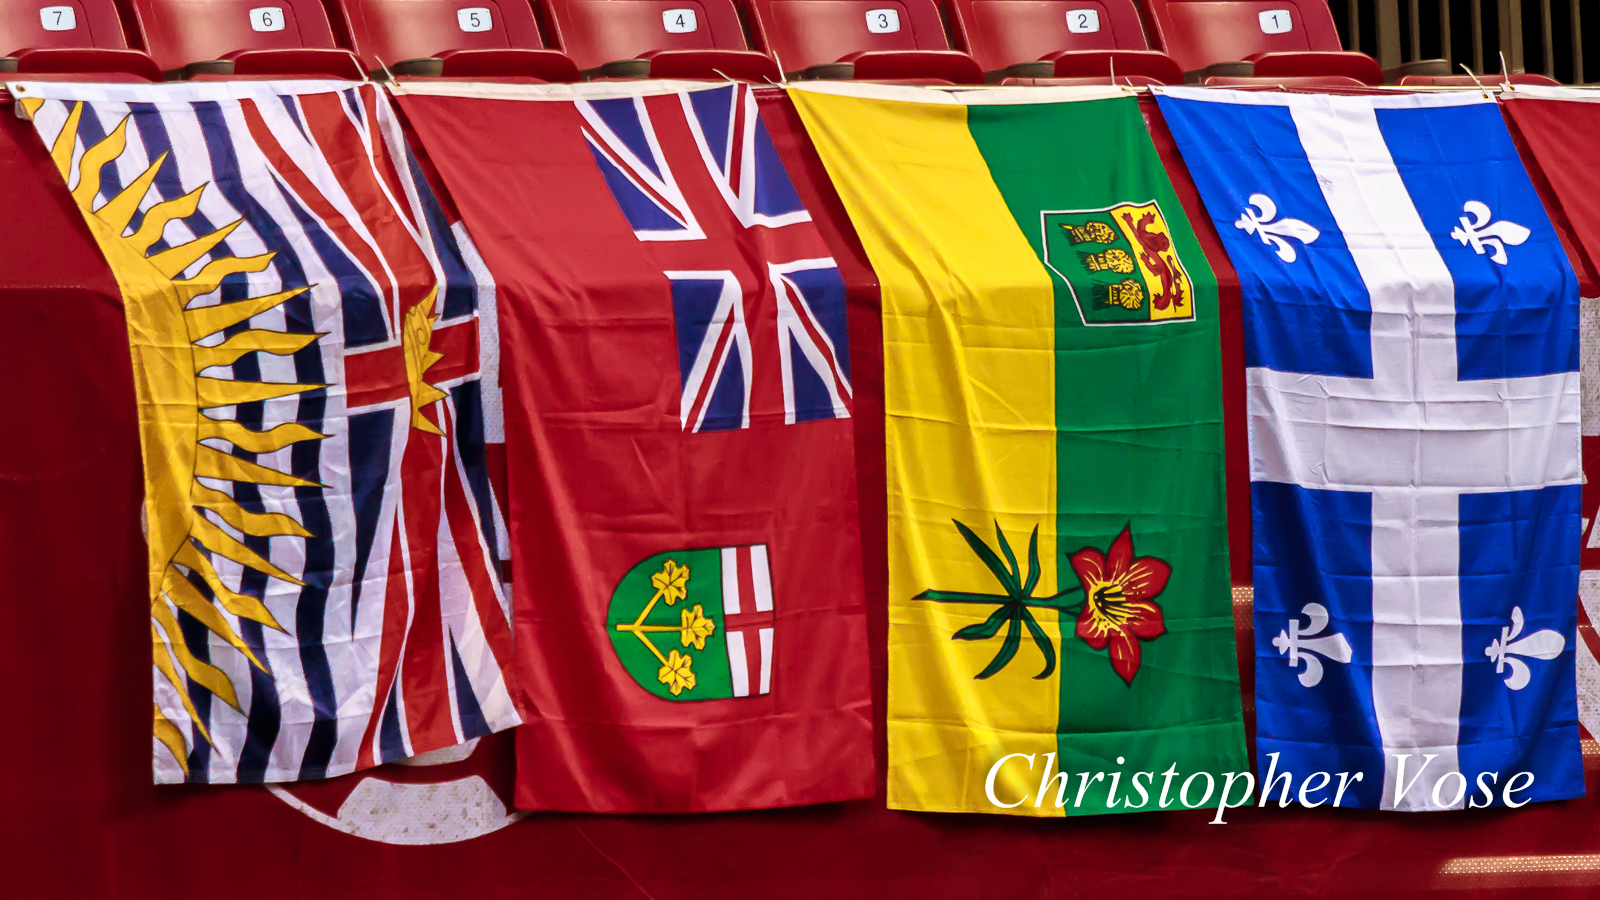 2014-06-18 Provincial Flags.jpg